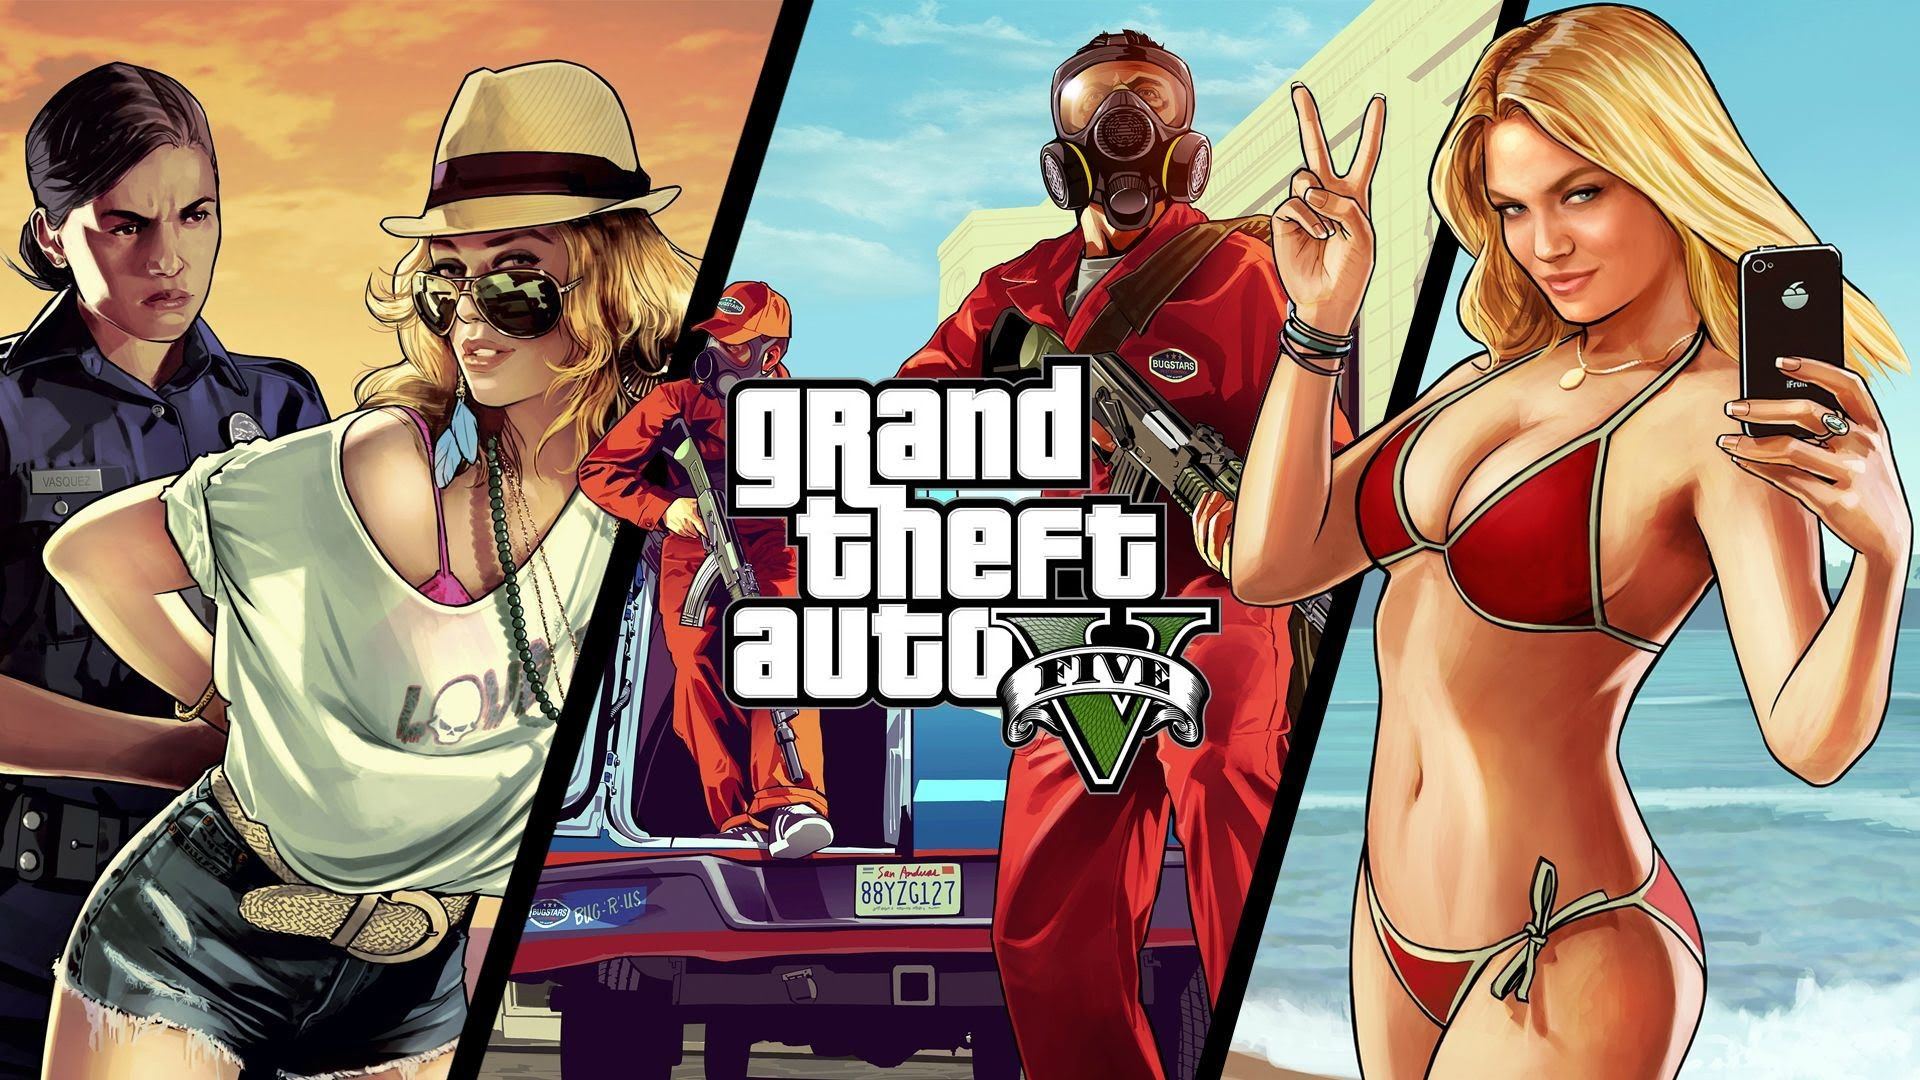 GTA 6 Release Date Rumors squashed by Take-Two